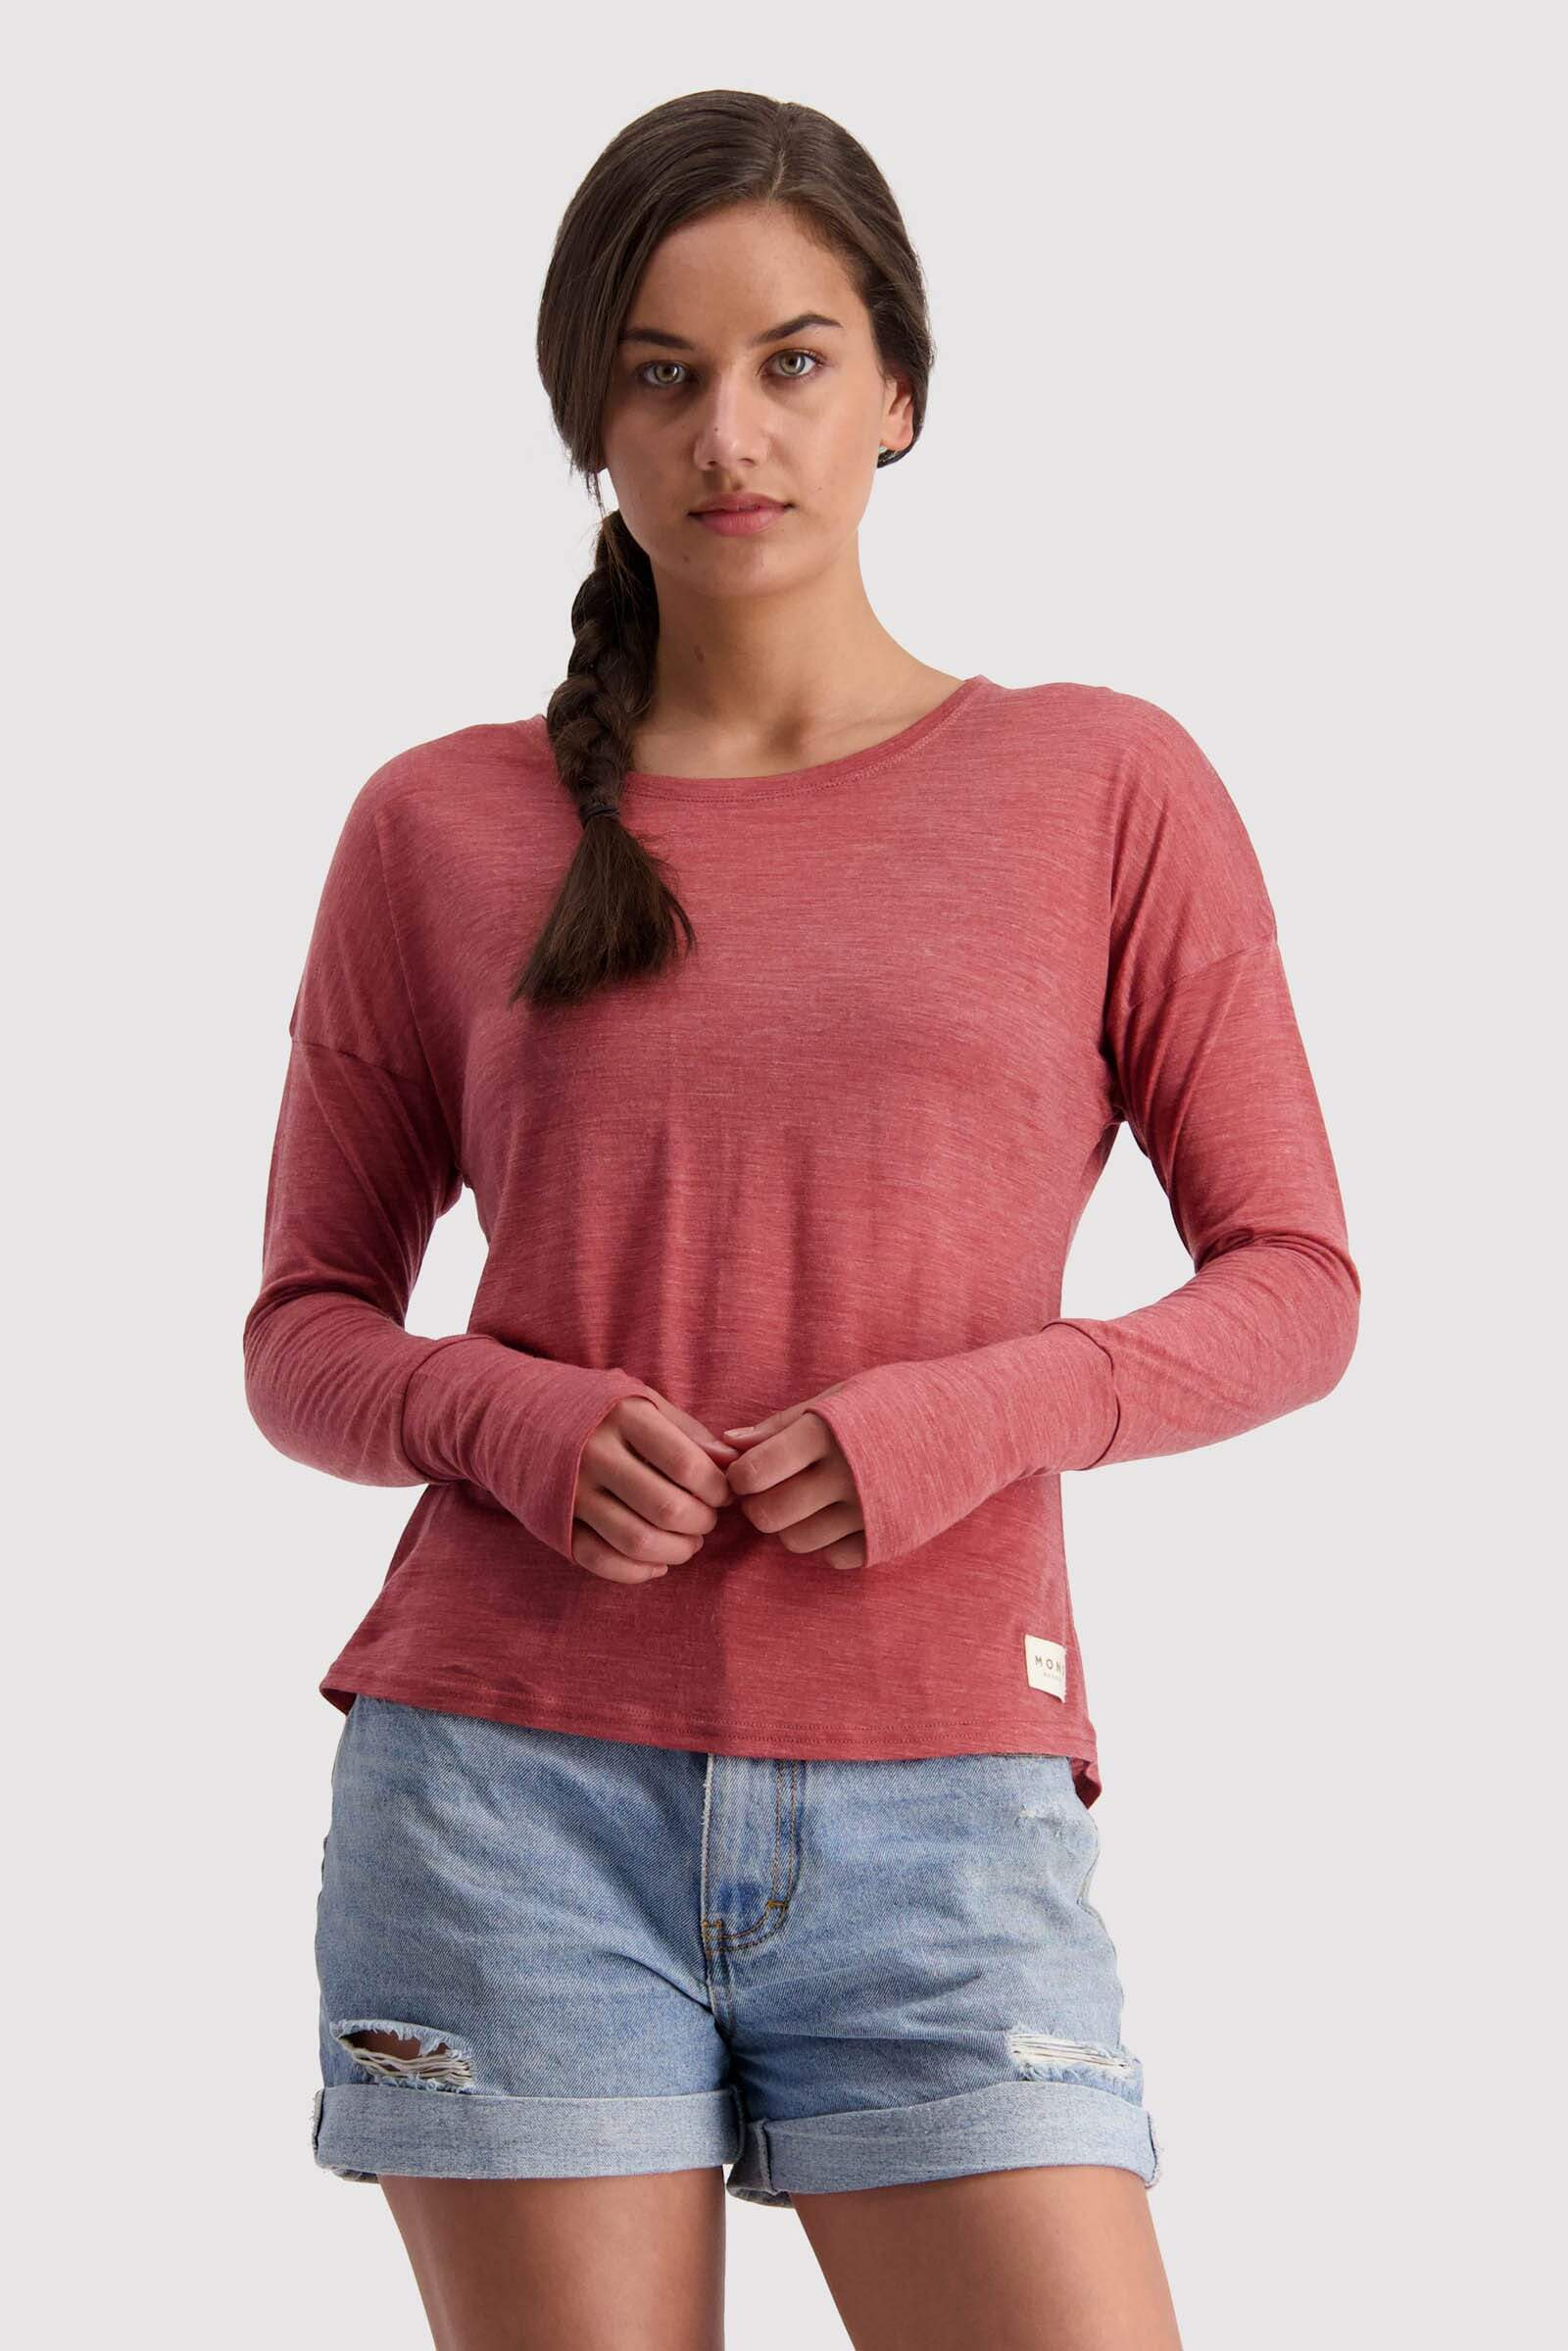 Estelle Relaxed LS - Terracotta